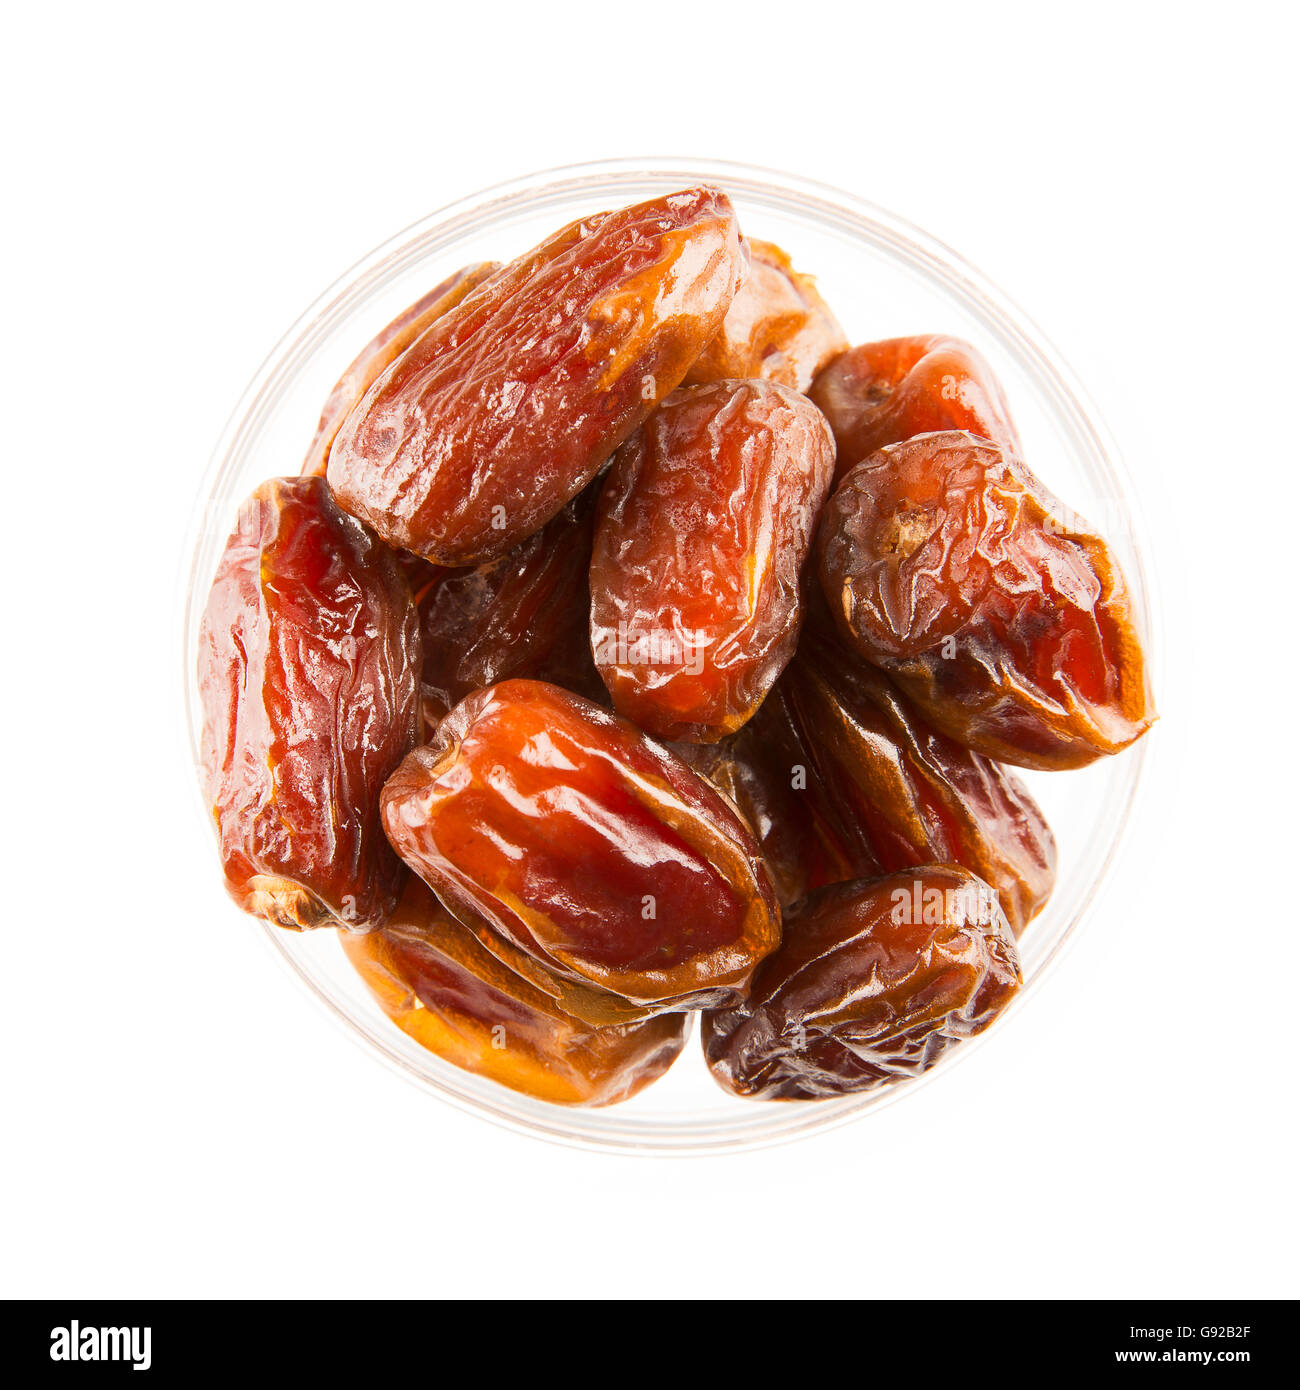 Dried dates in bowl, isolated on white and viewed from above. - Stock Image